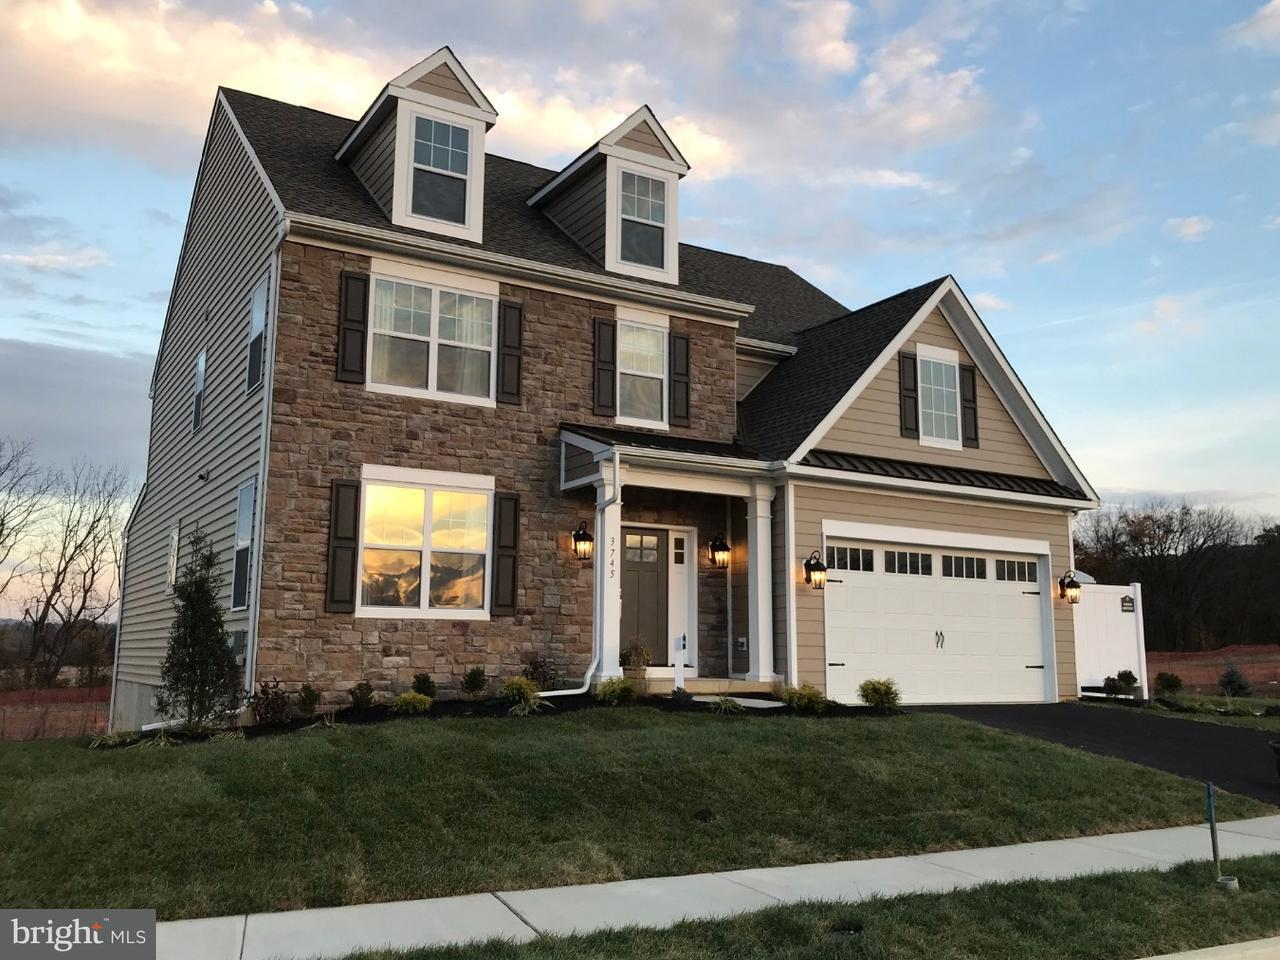 Single Family Home for Sale at 3611 GEHMAN Road Macungie, Pennsylvania 18062 United States